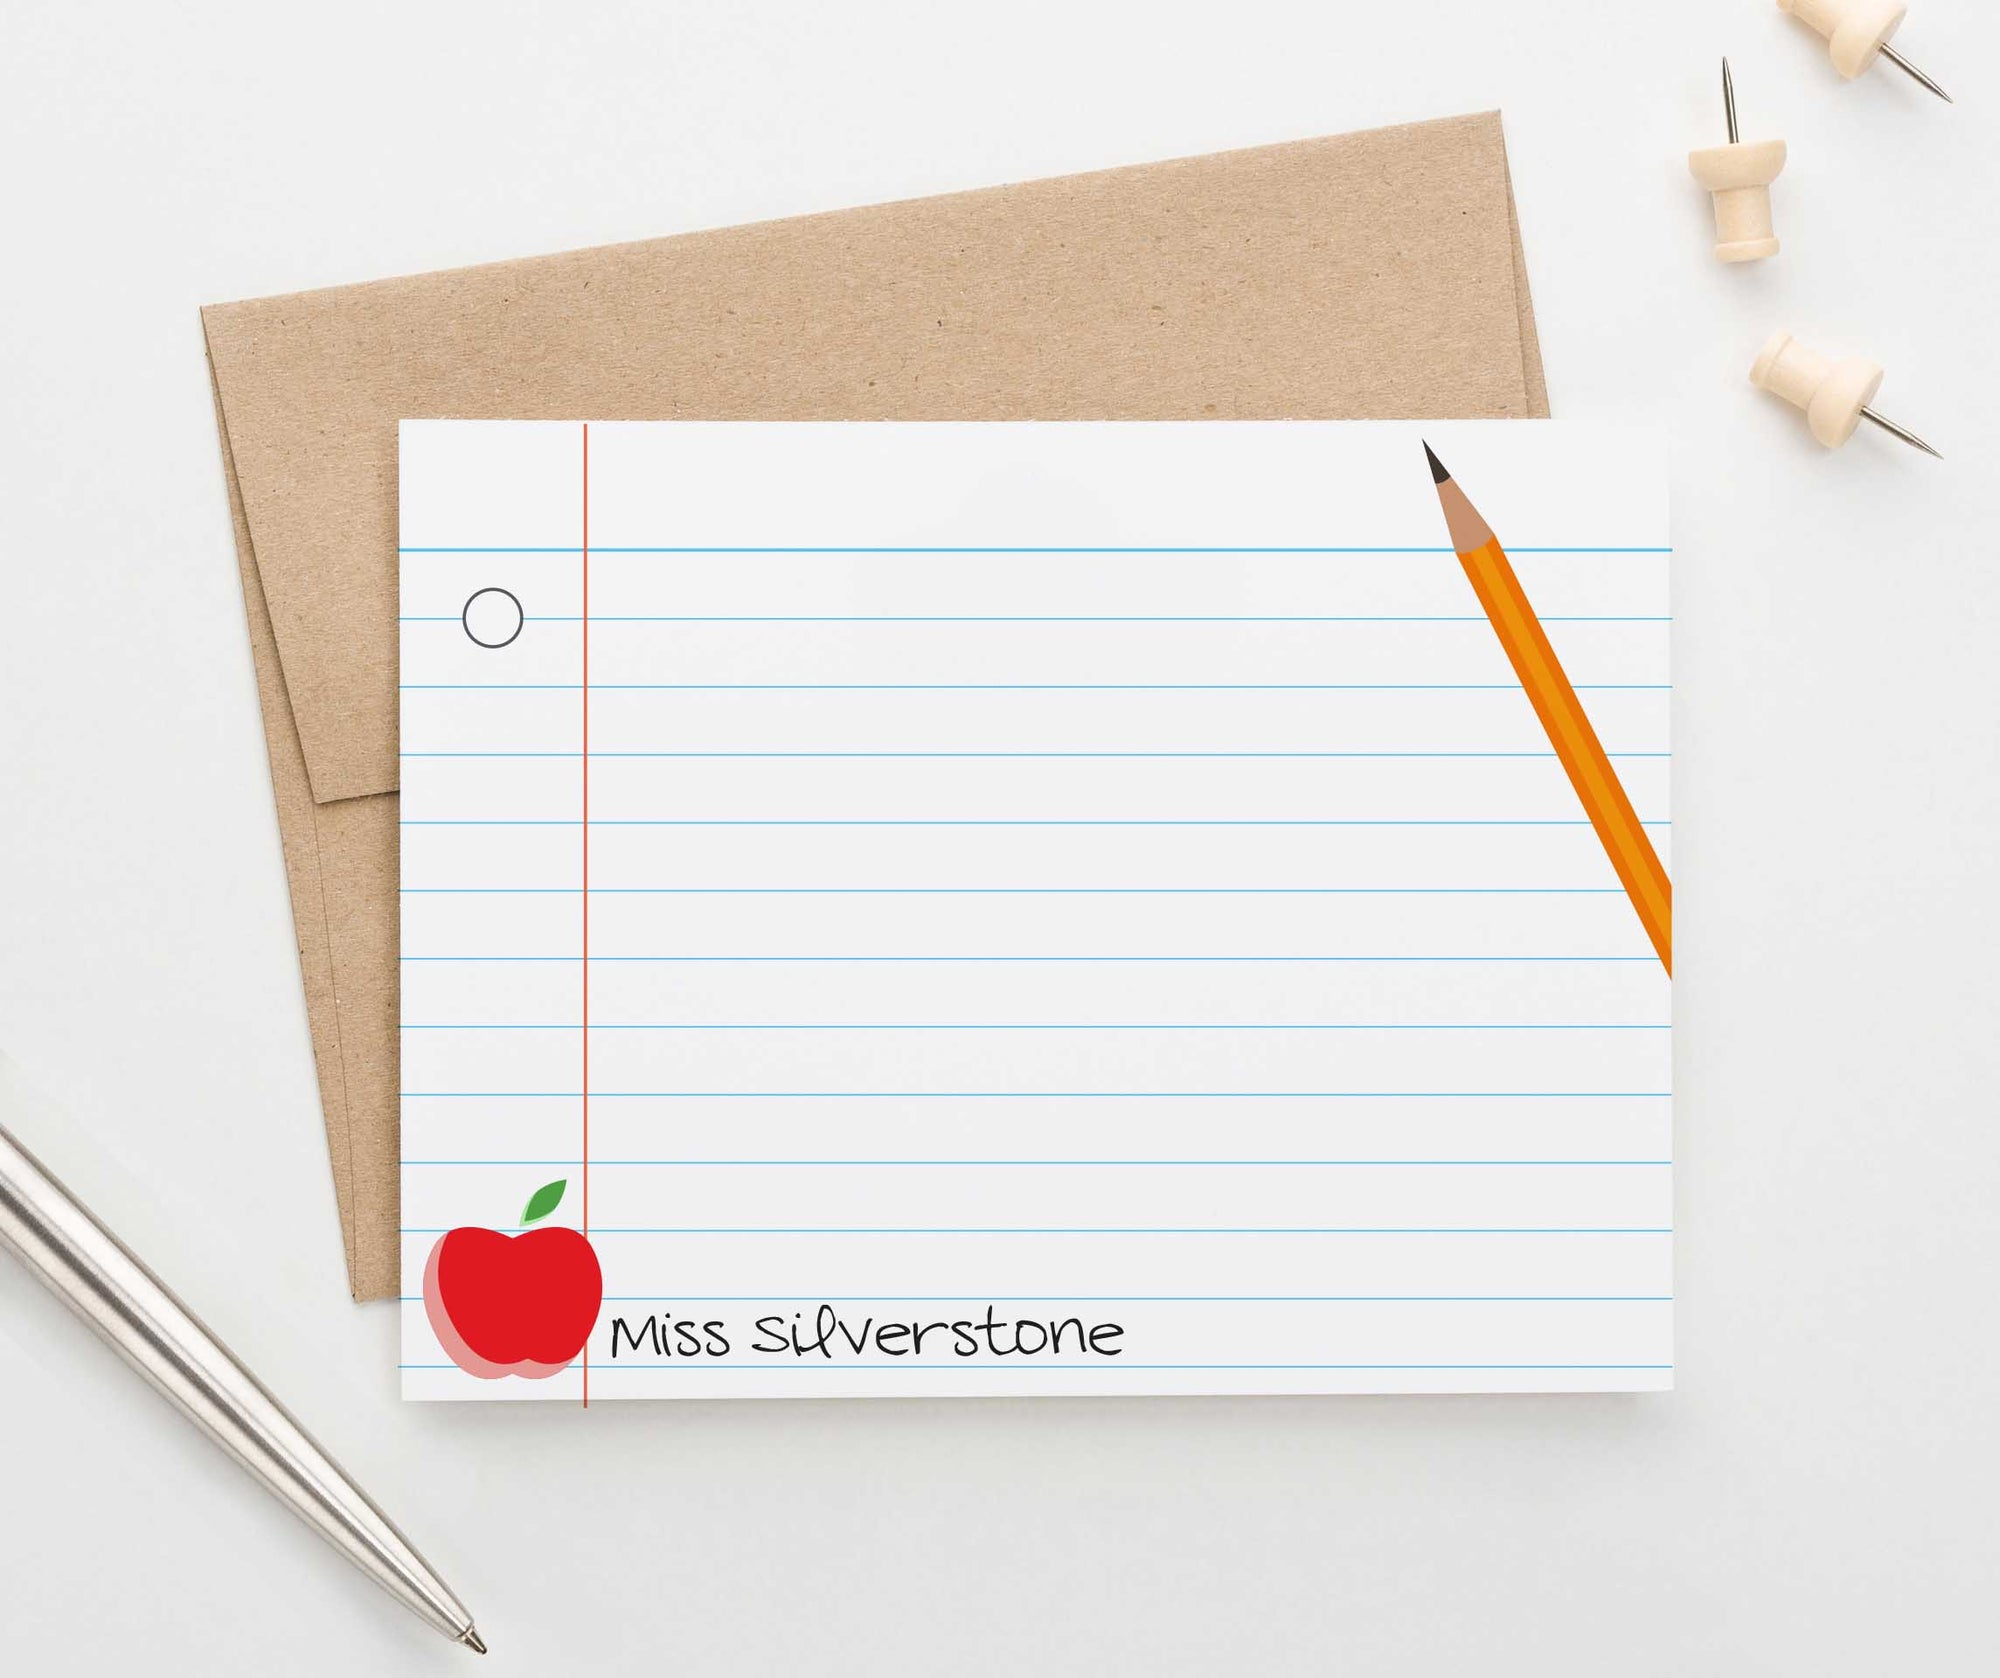 PS109 paper personalized thank you notes for teachers with pencil and apple teacher principle 1